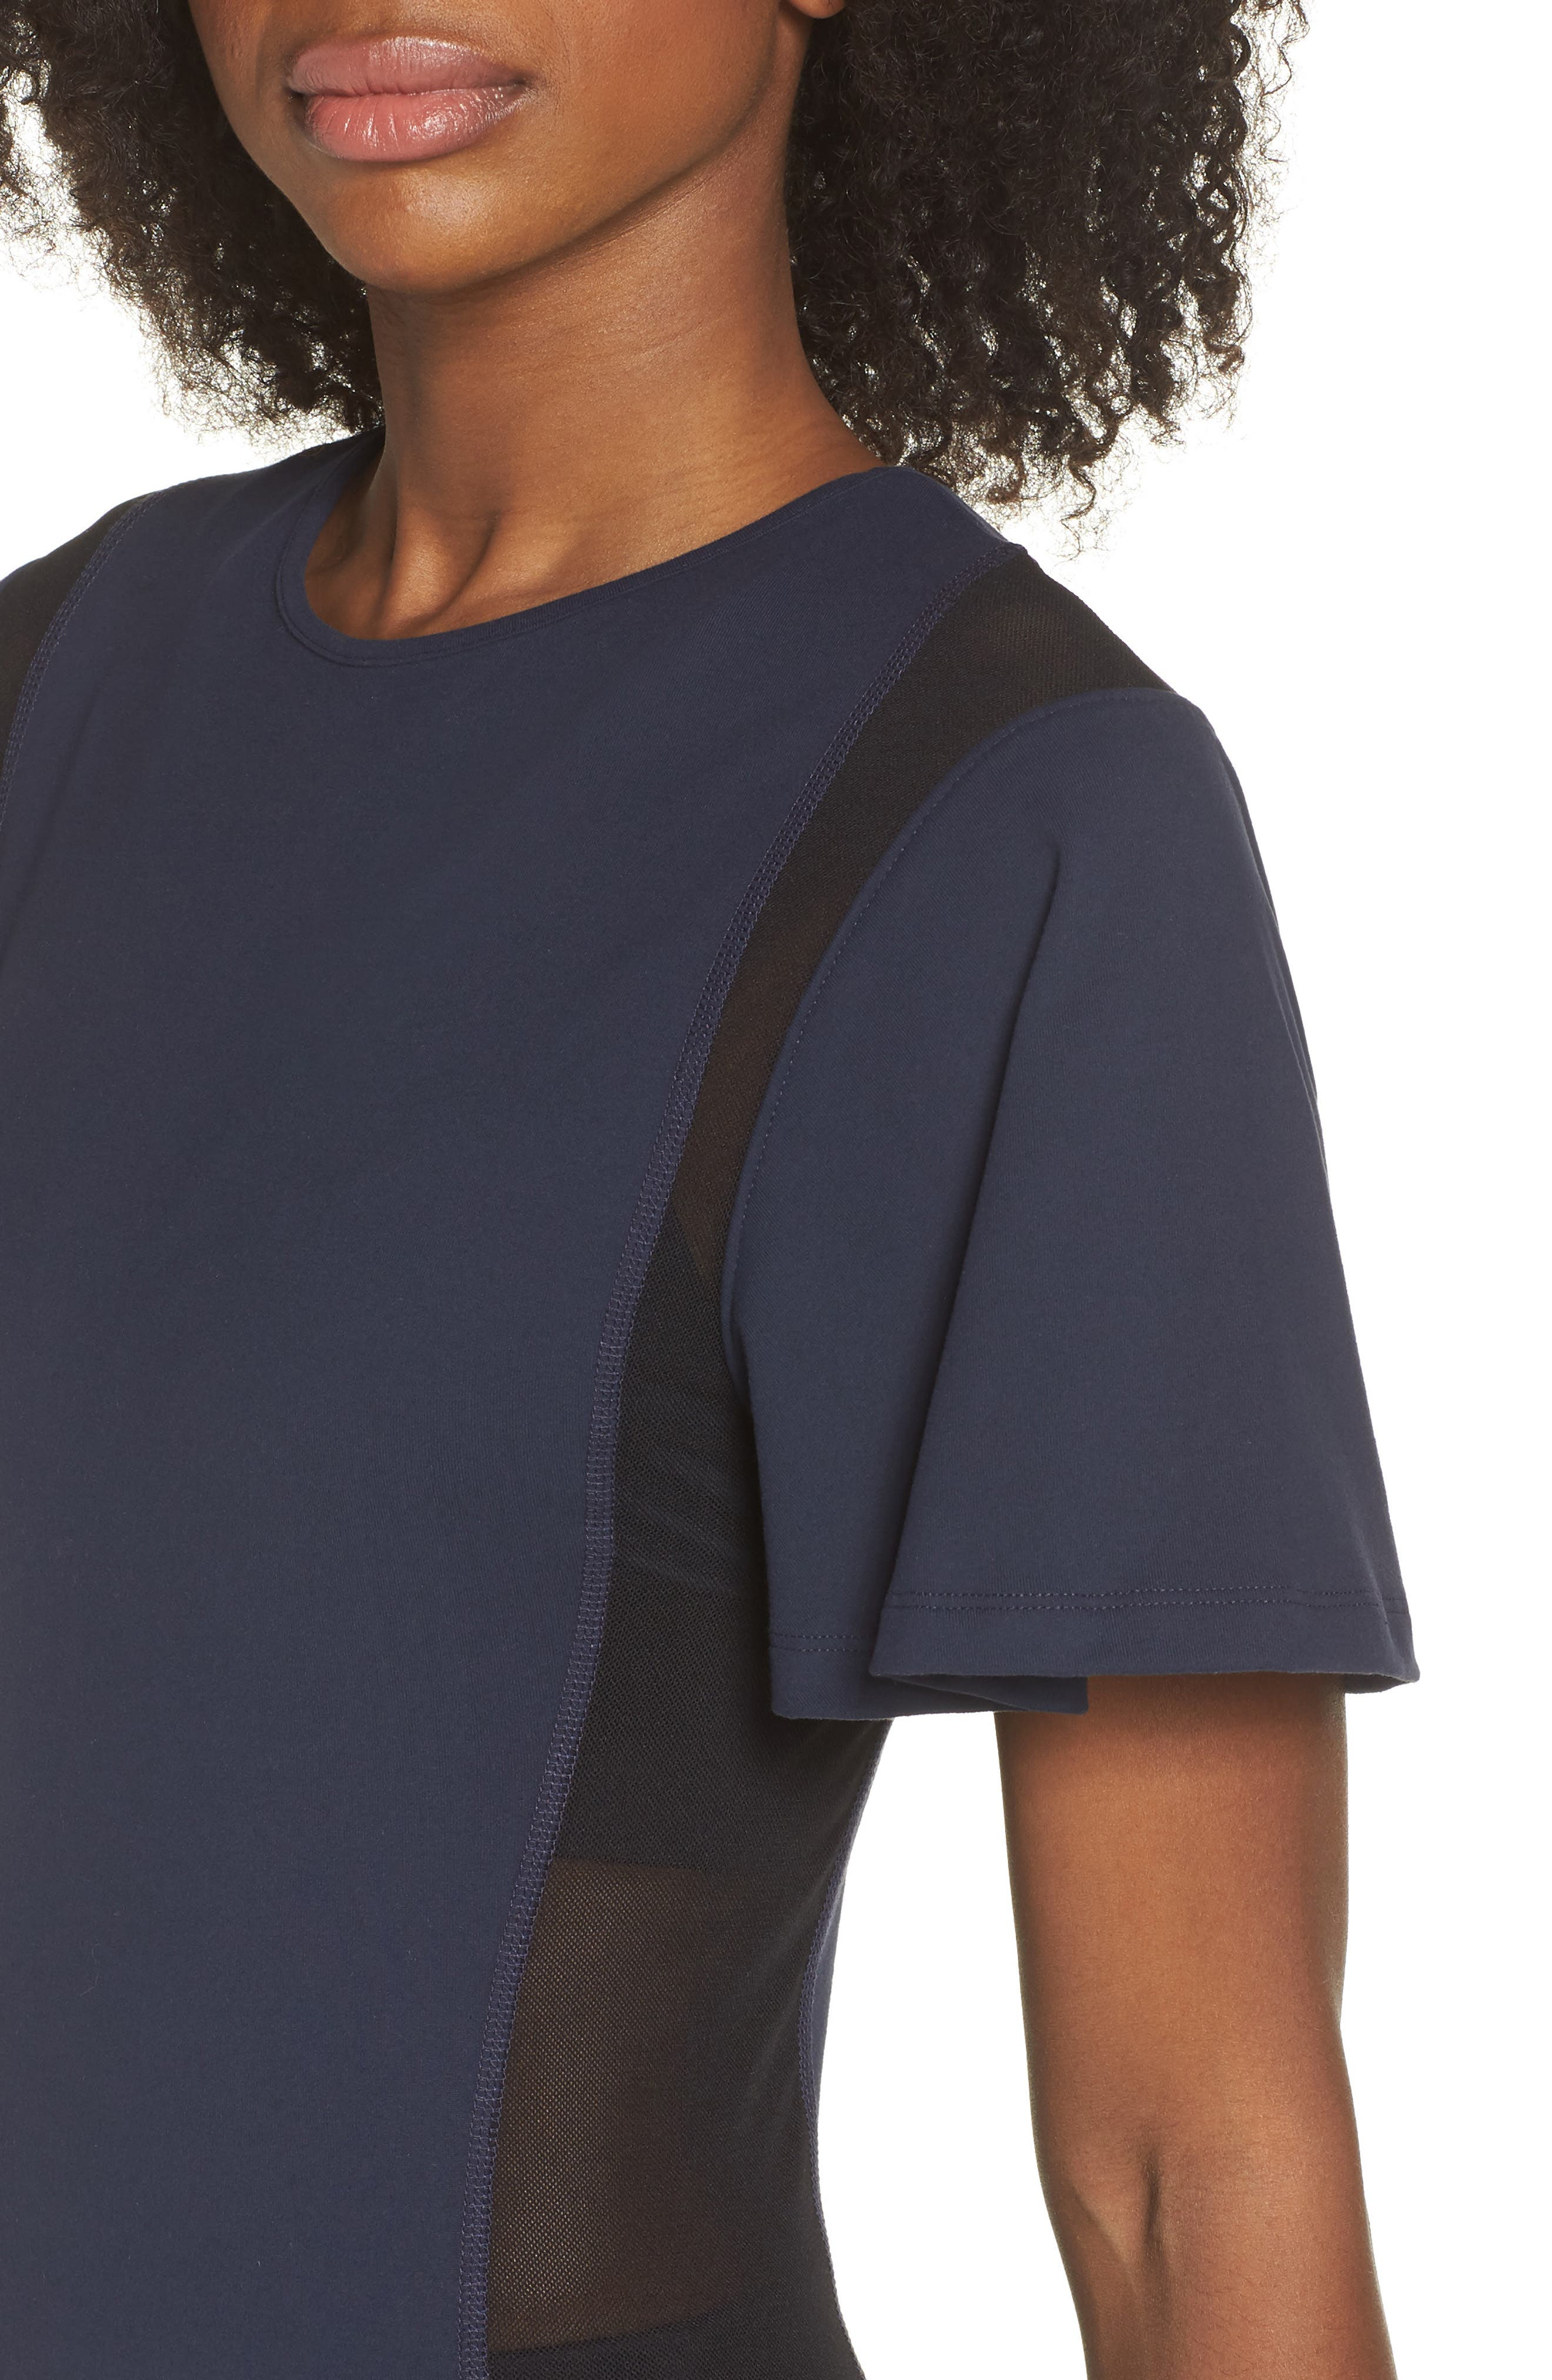 BoomBoom Athletica Wing Sleeve Tee,                             Alternate thumbnail 4, color,                             NAVY/ BLACK